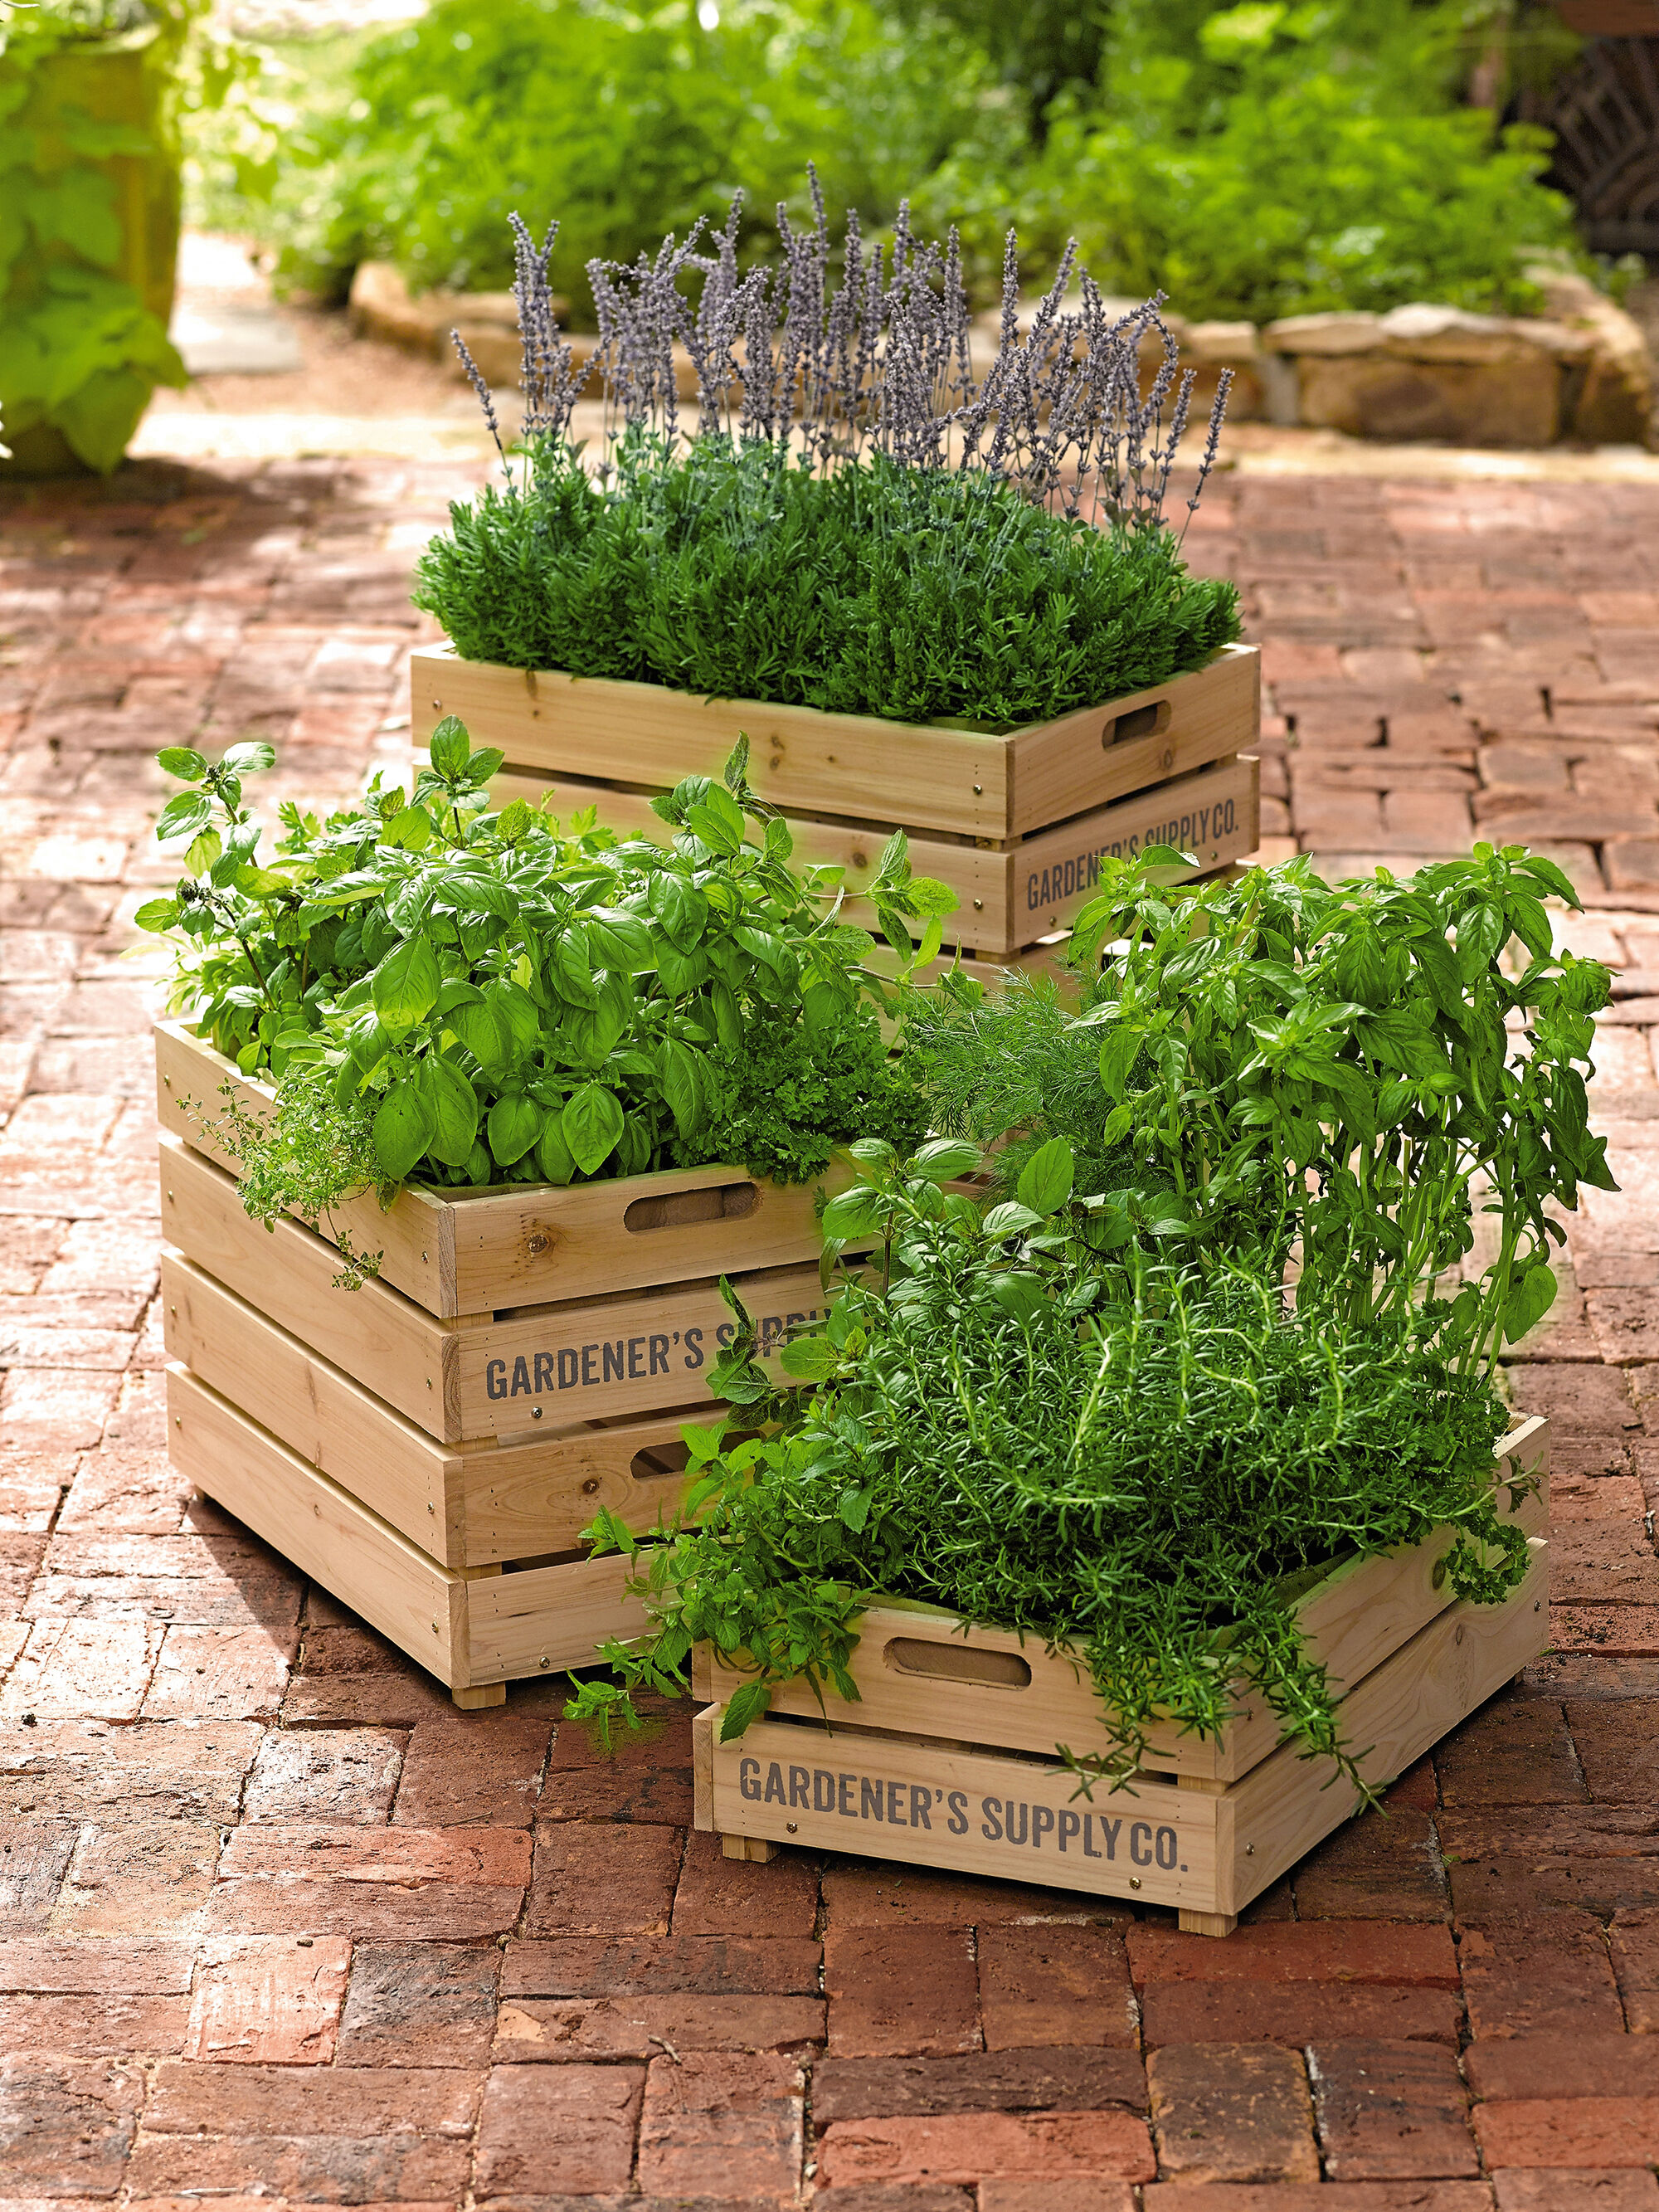 Herb Box Wooden Crate Planter With Liner Gardener' Supply